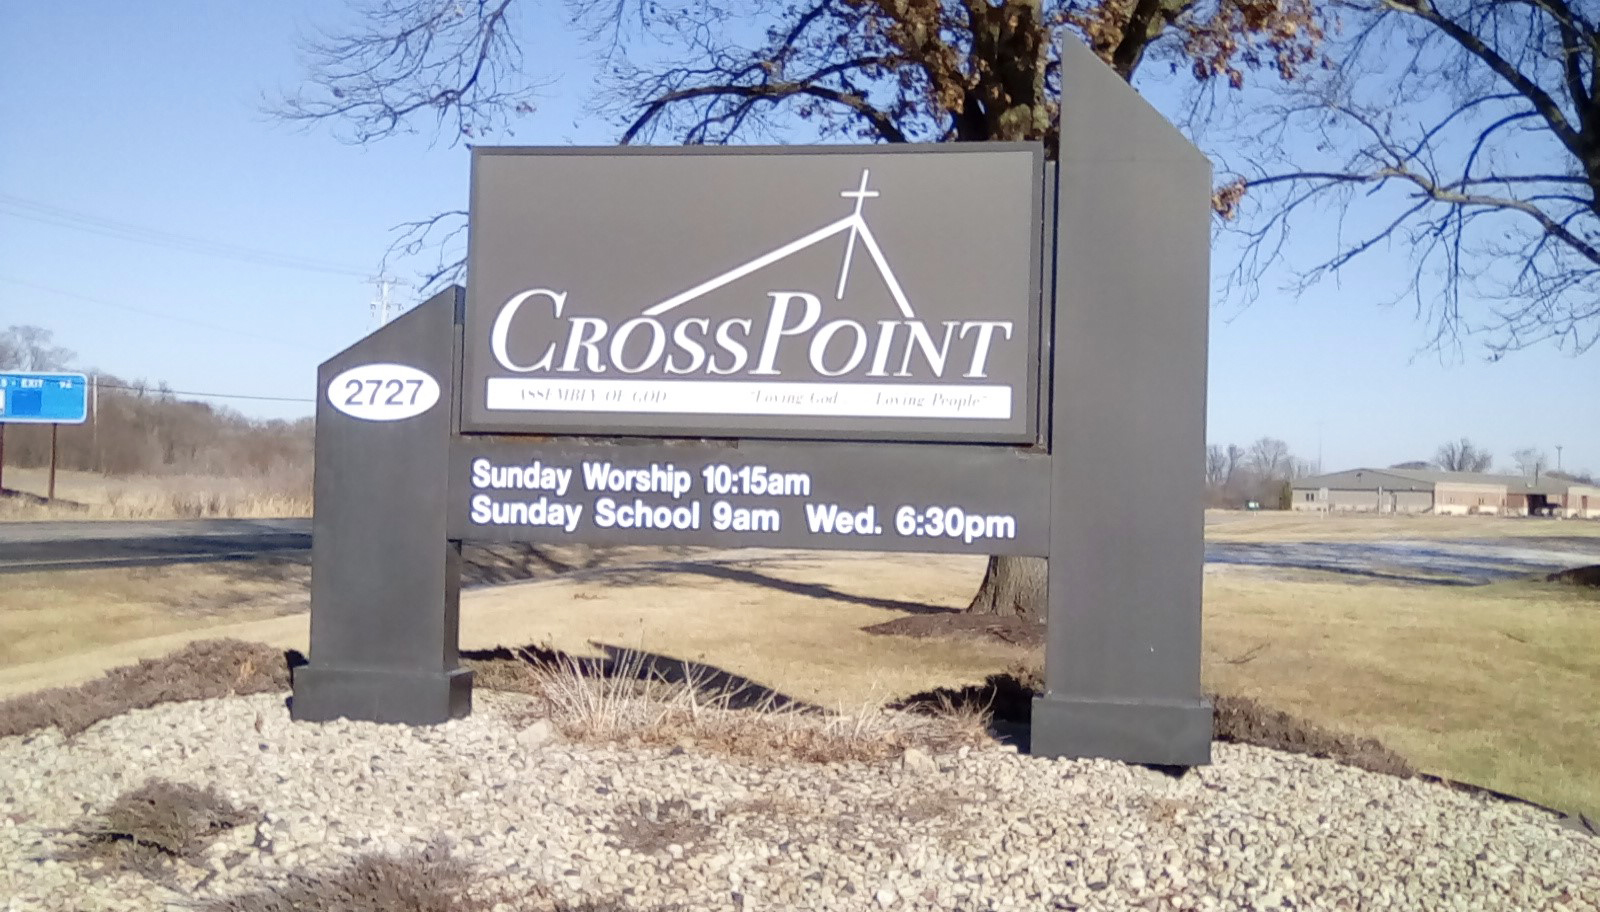 CrossPoint Assembly of God Church